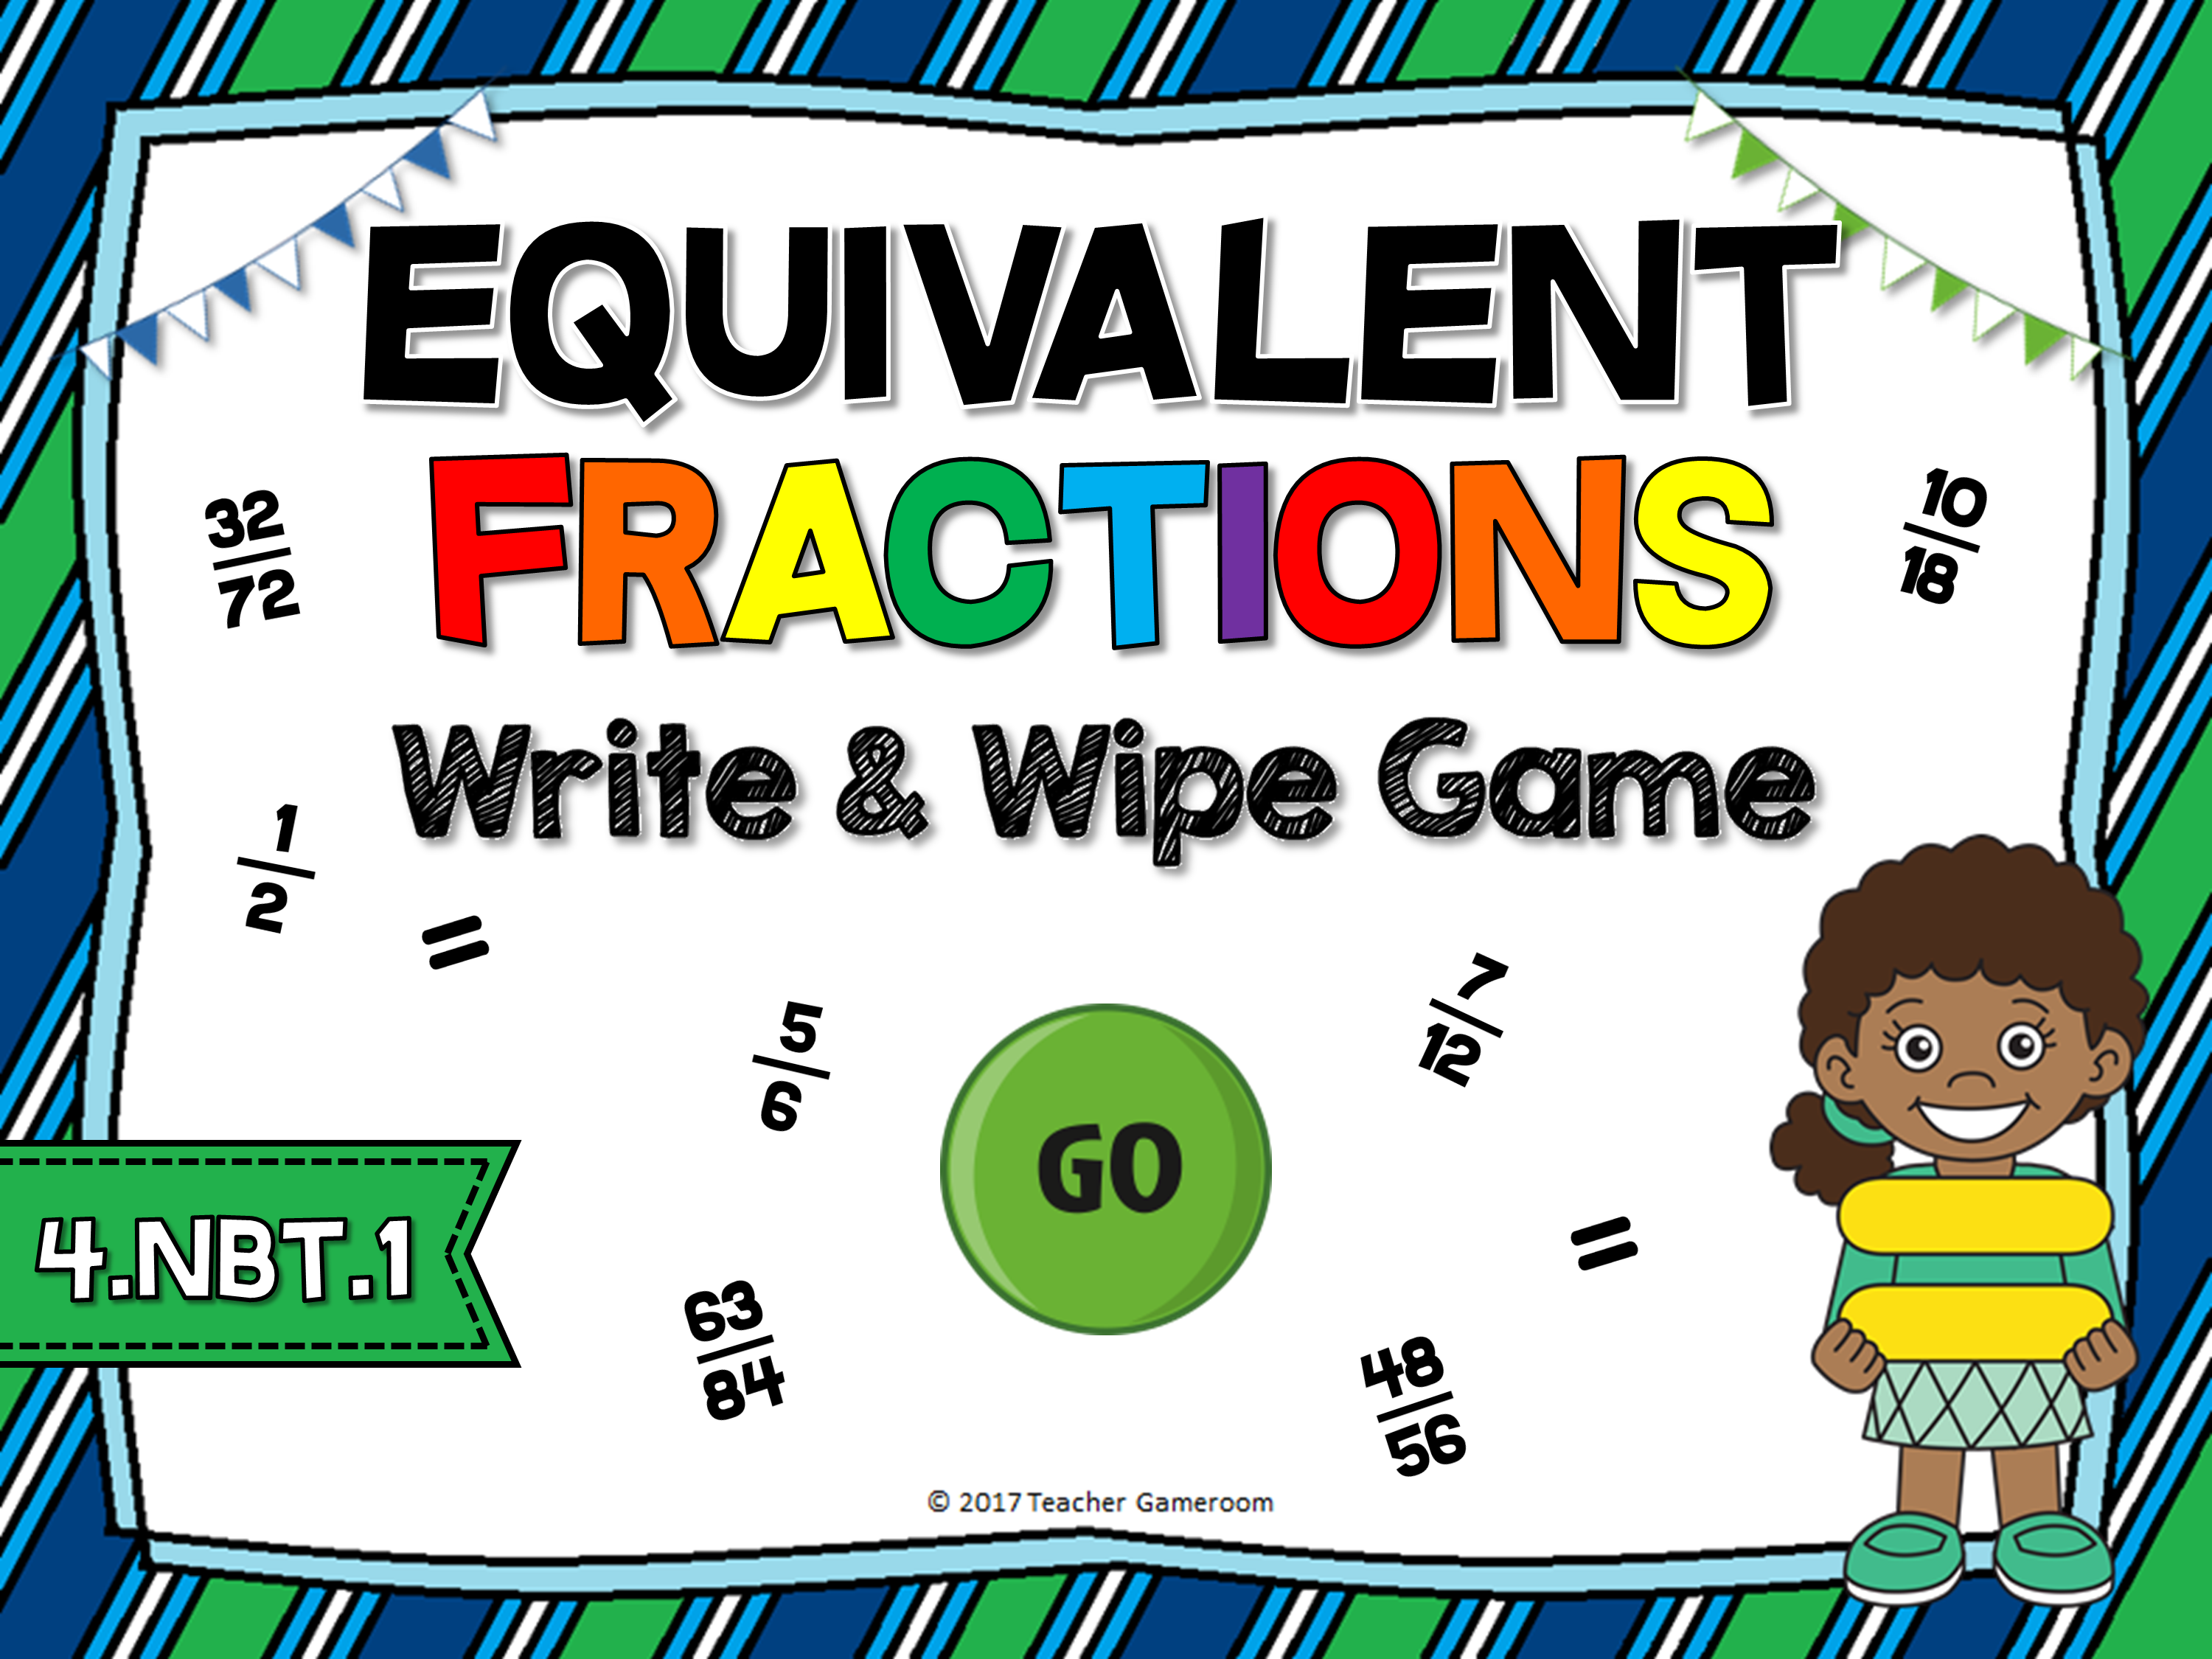 Equivalent Fractions Write & Wipe Game